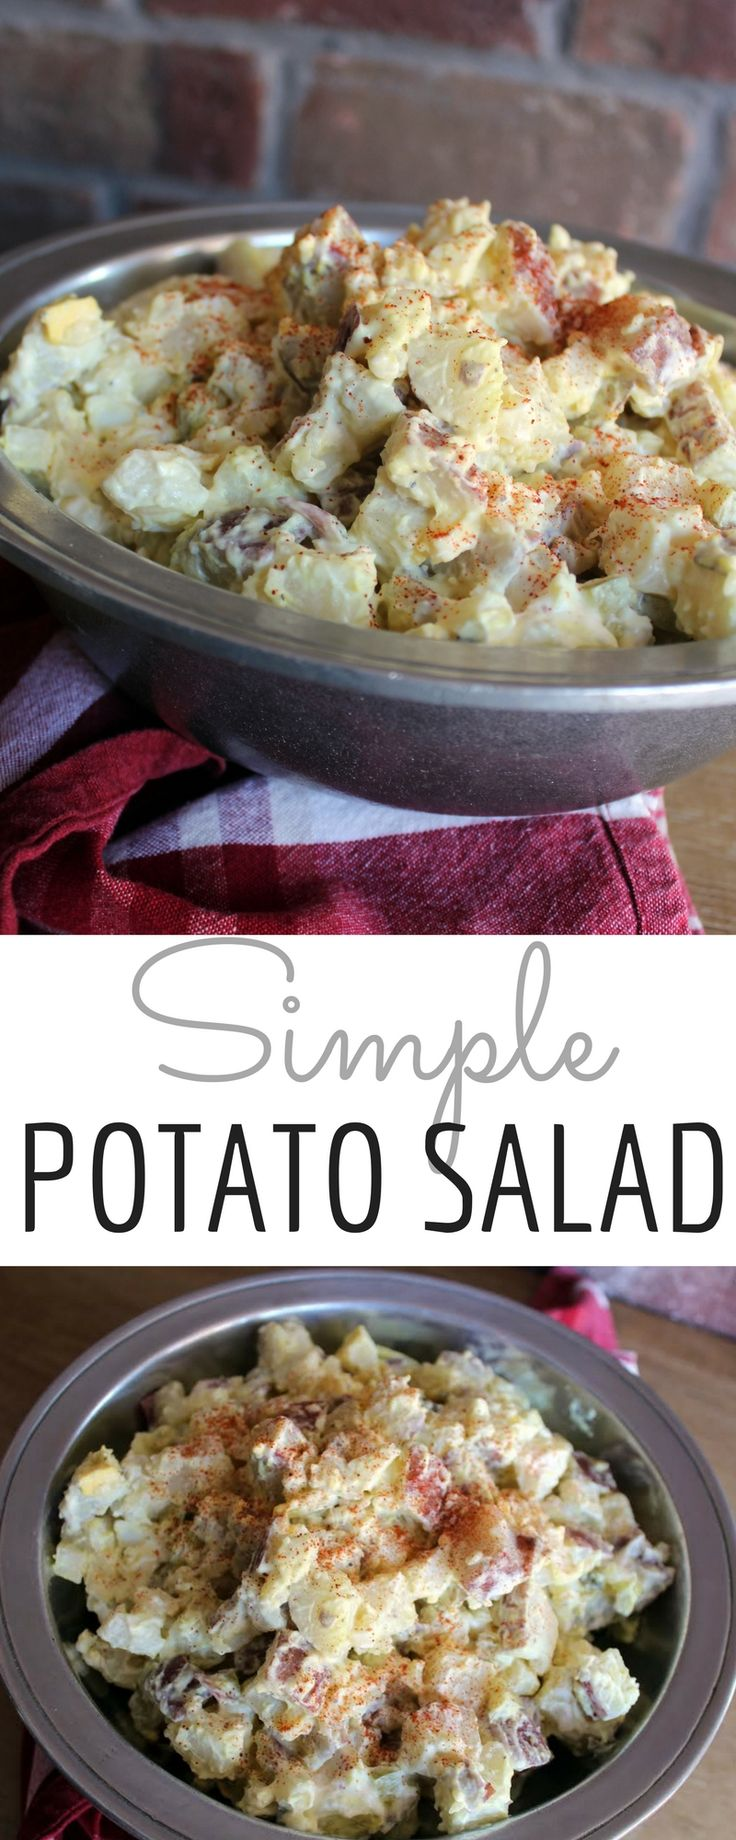 This easy 5 step homemade potato salad recipe pairs perfectly with fried chicken and homemade biscuits on Sunday afternoon.